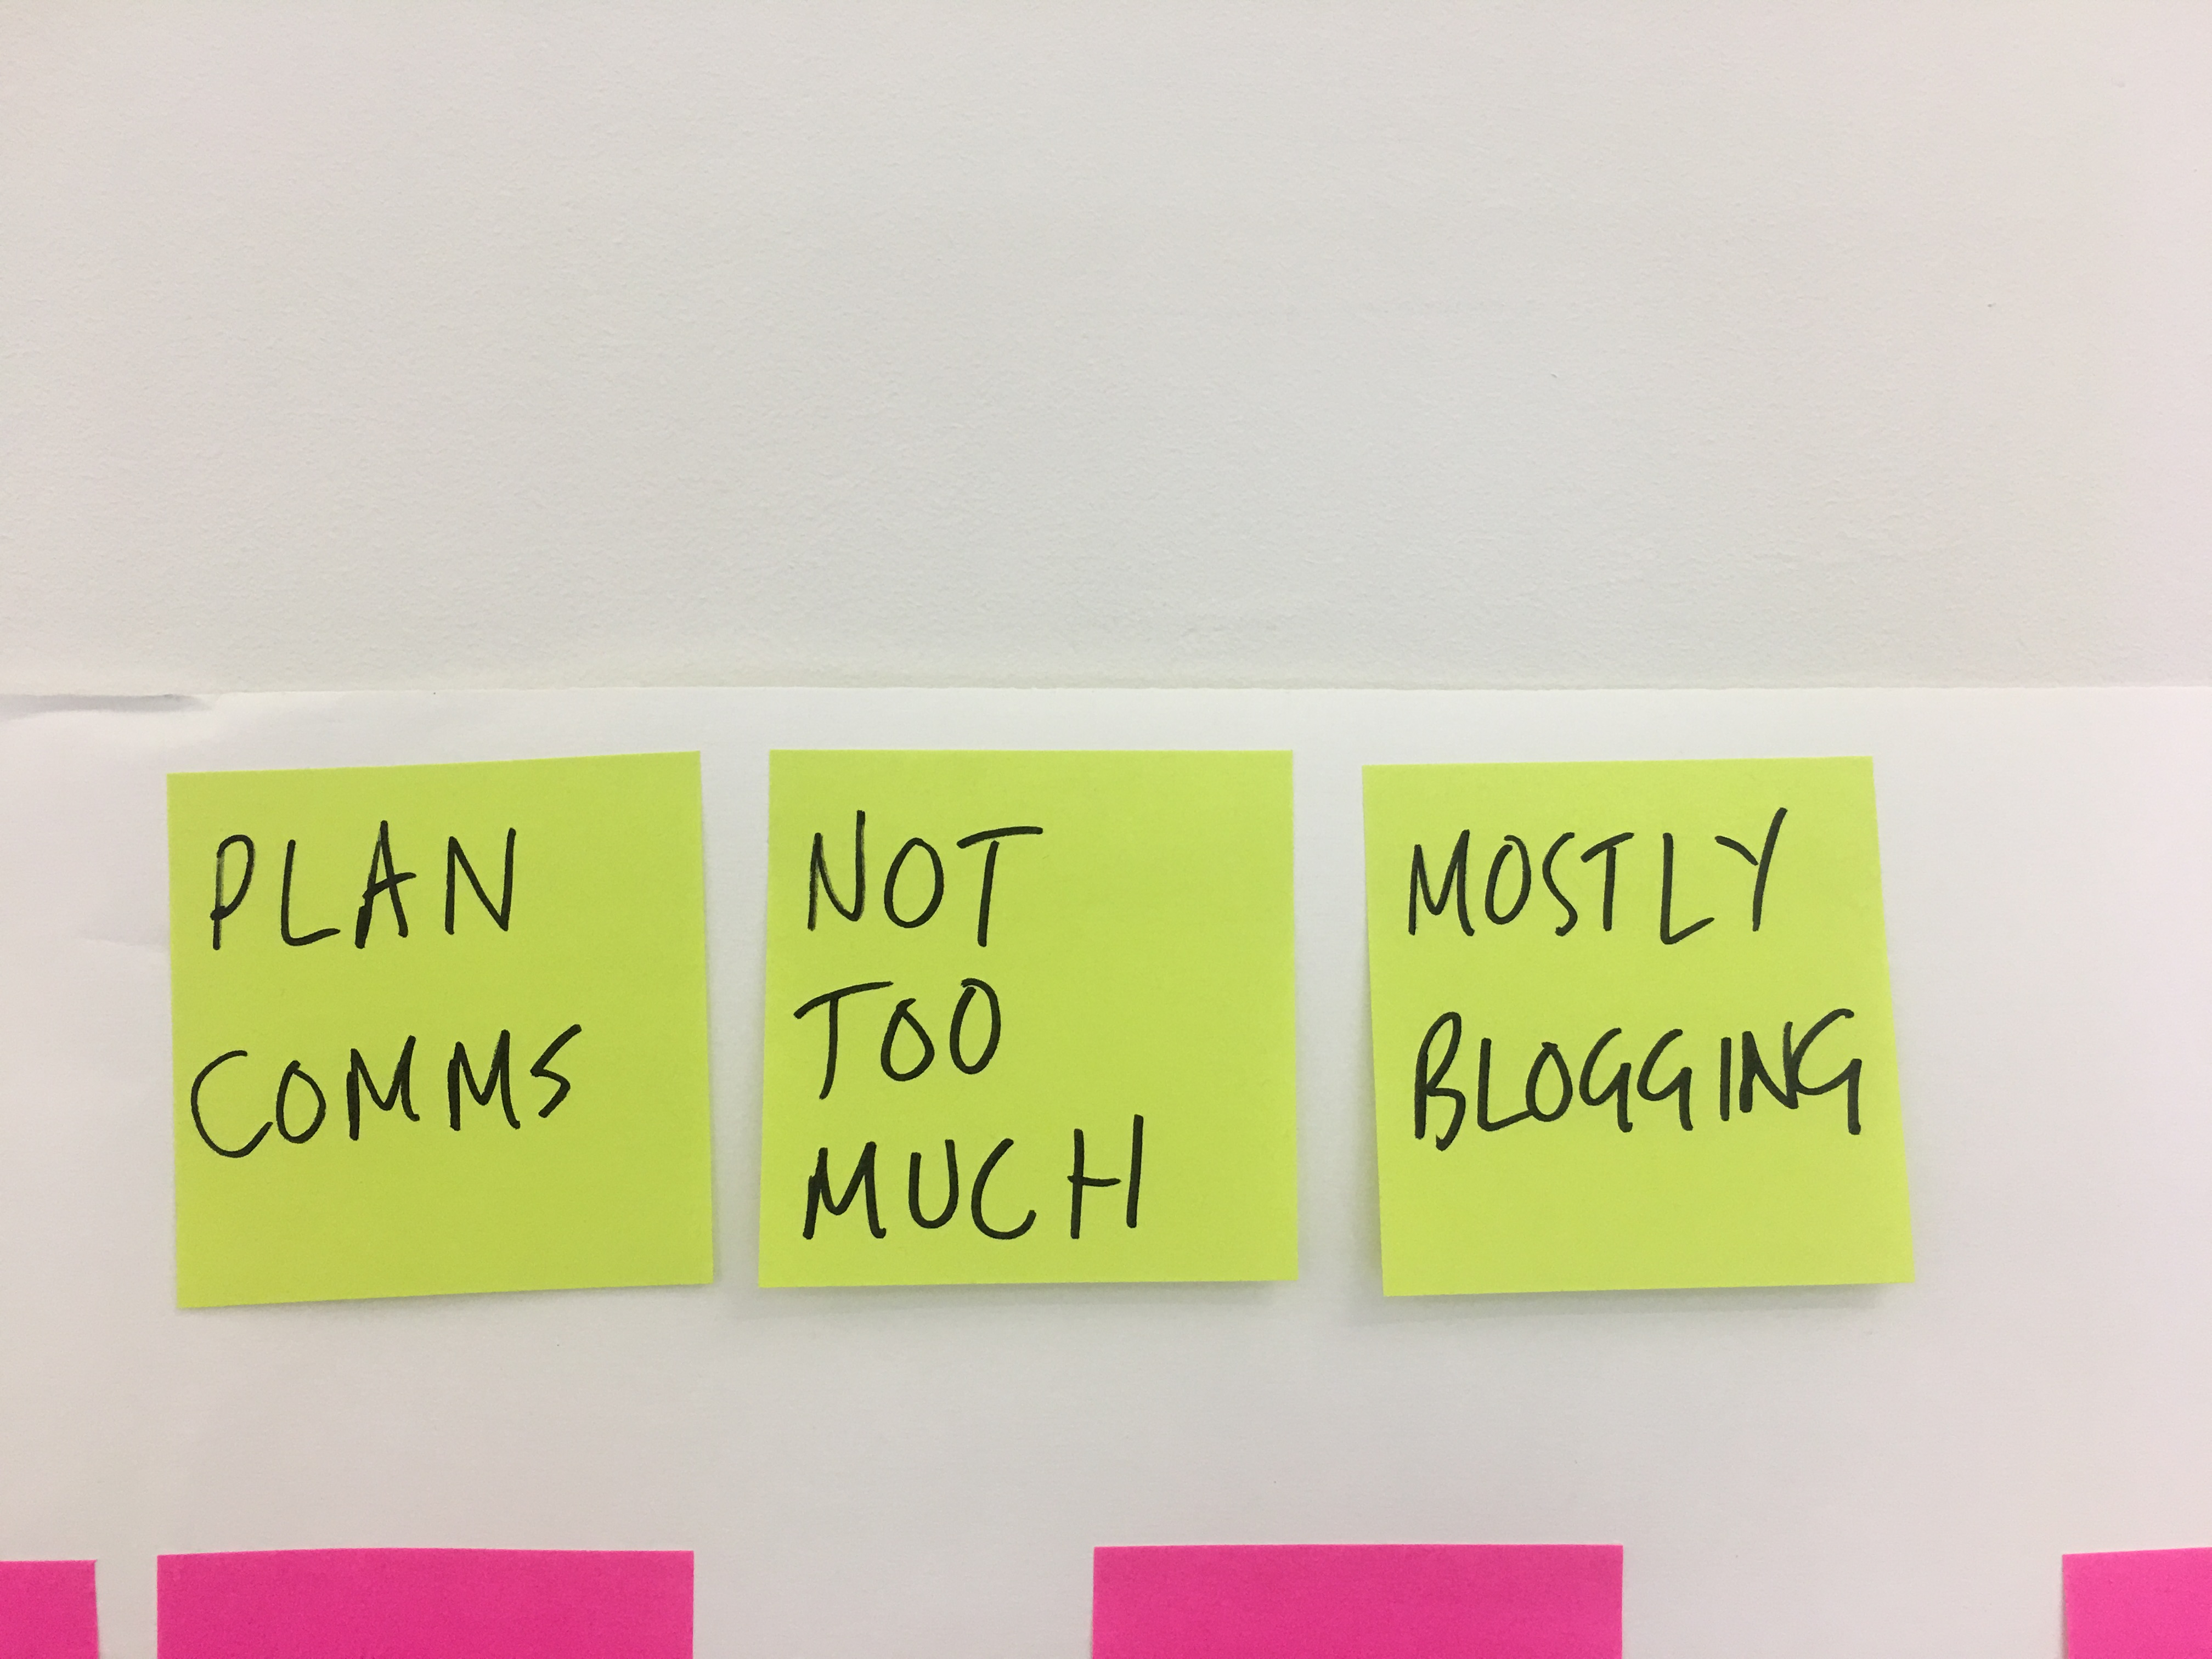 3 sticky notes that say PLAN COMMS / NOT TOO MUCH / MOSTLY BLOGGING